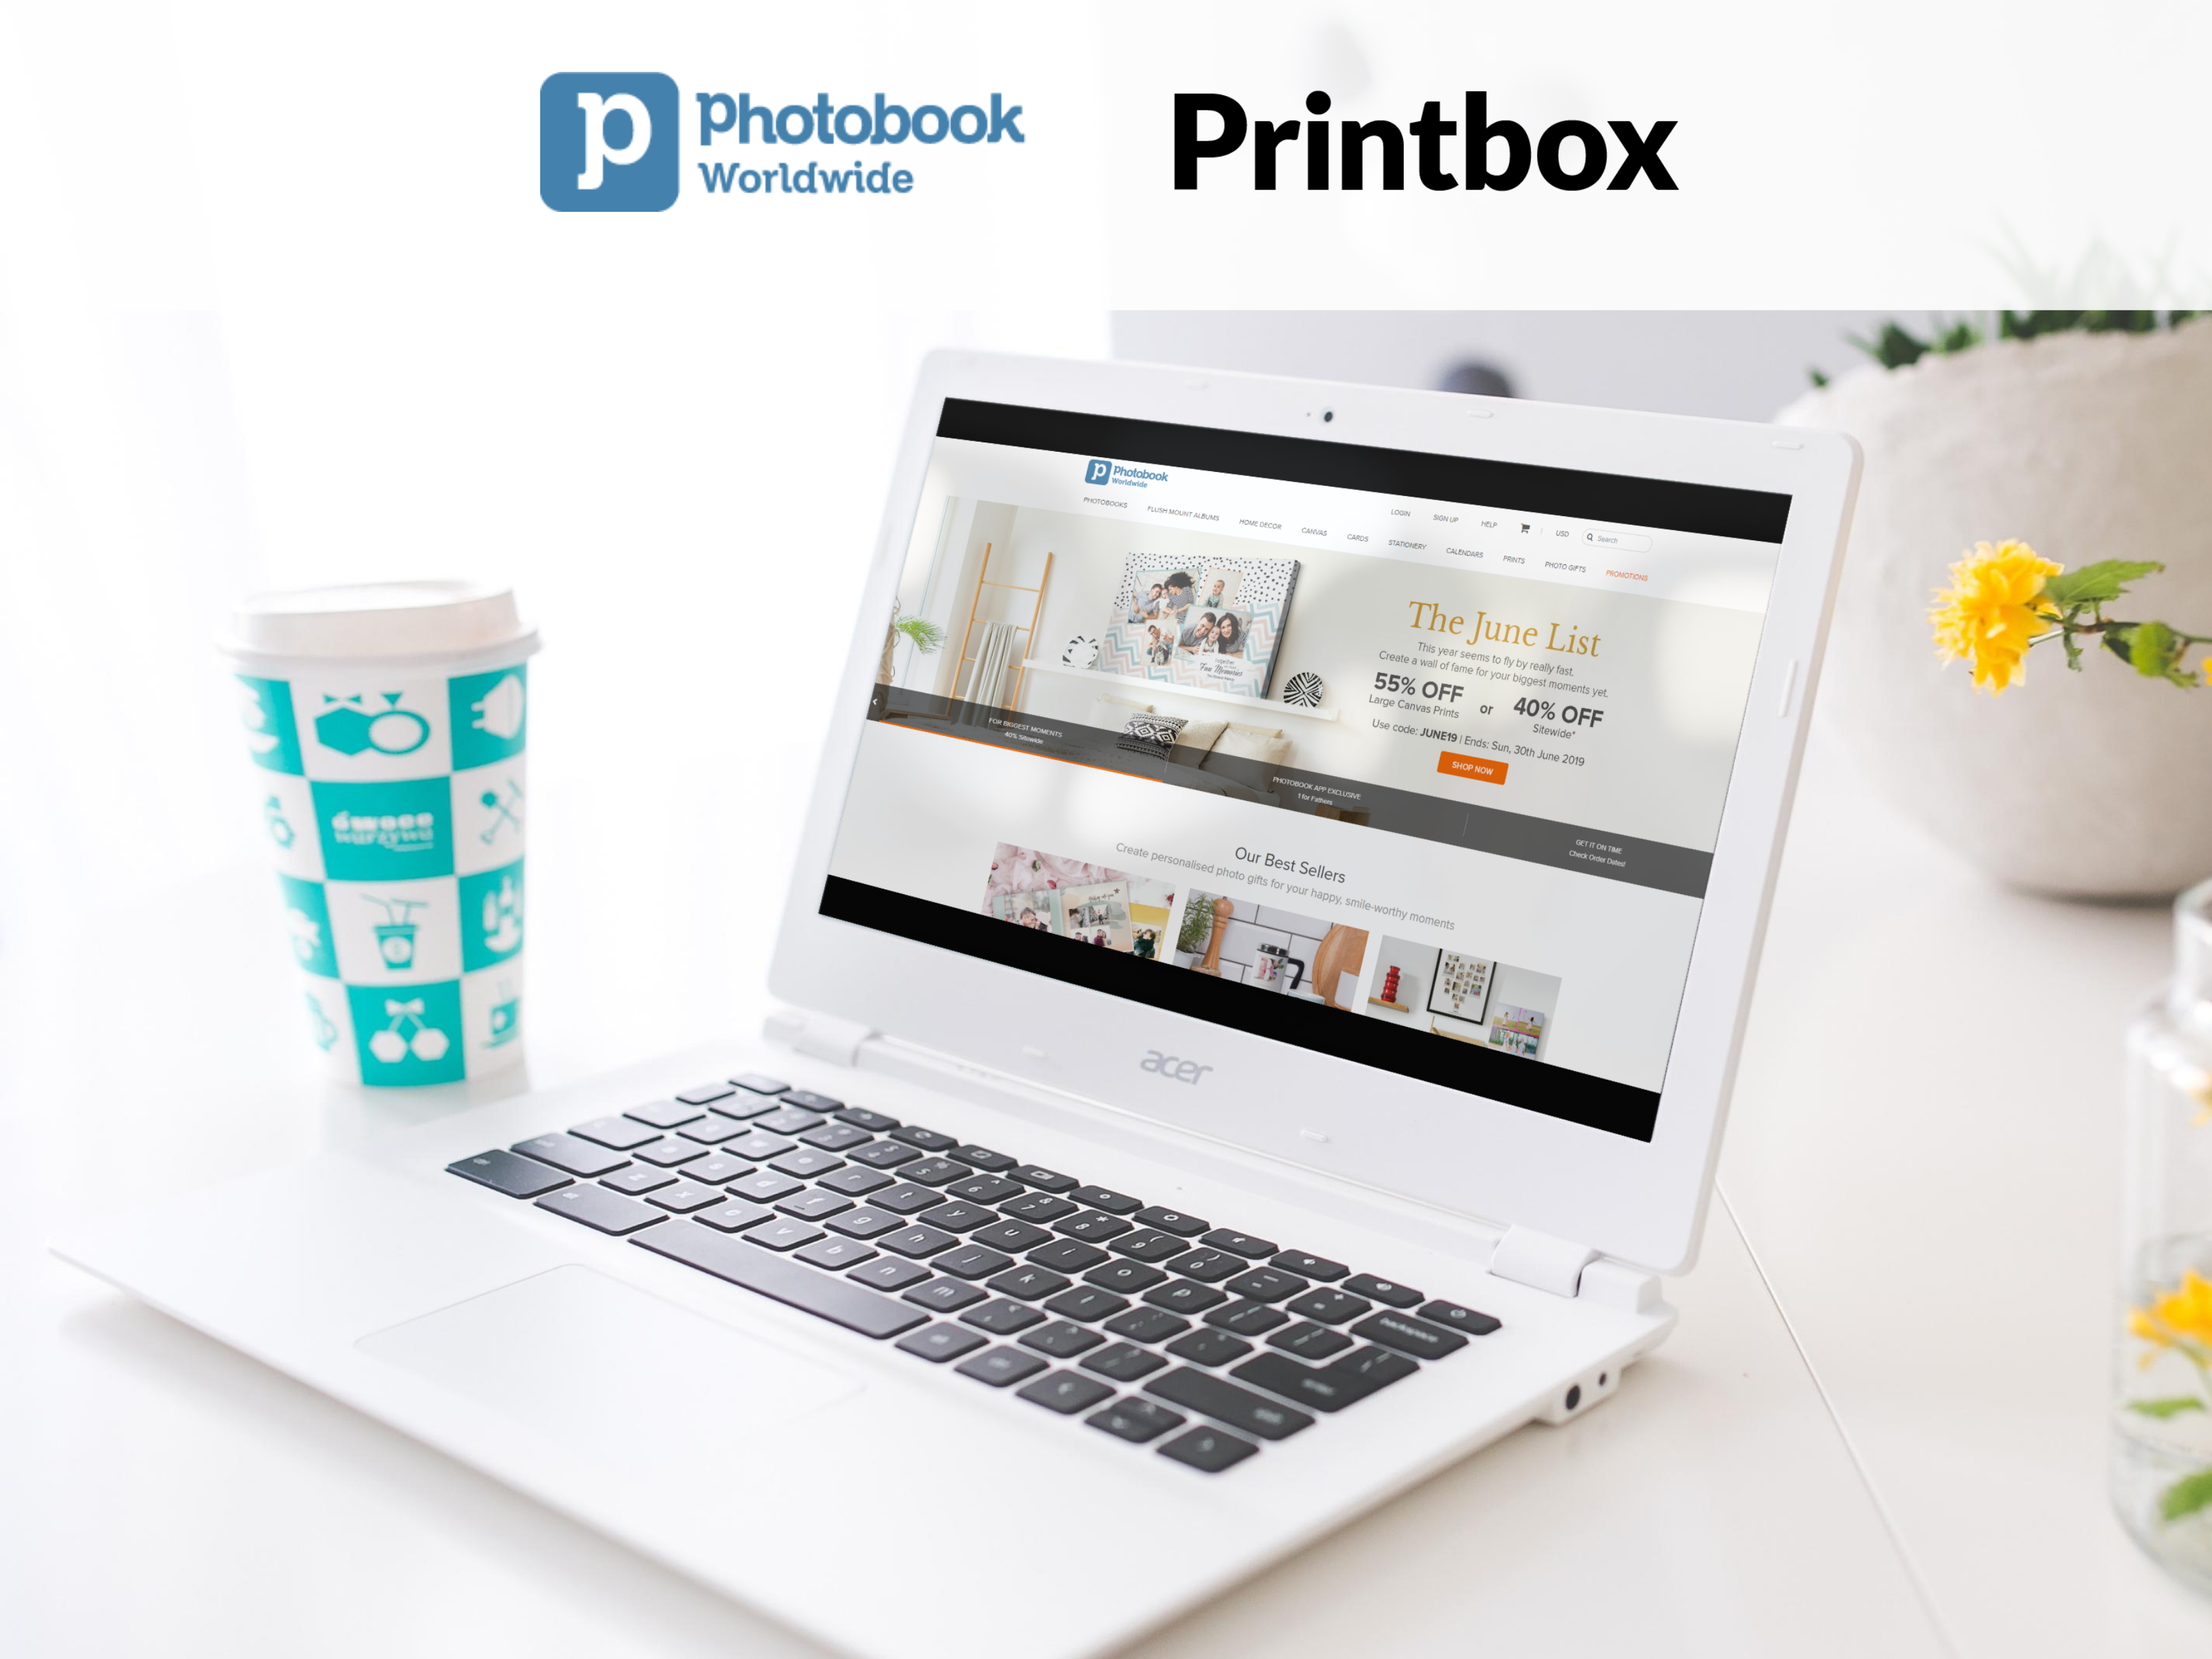 Printbox and Photobook Worldwide Press Release